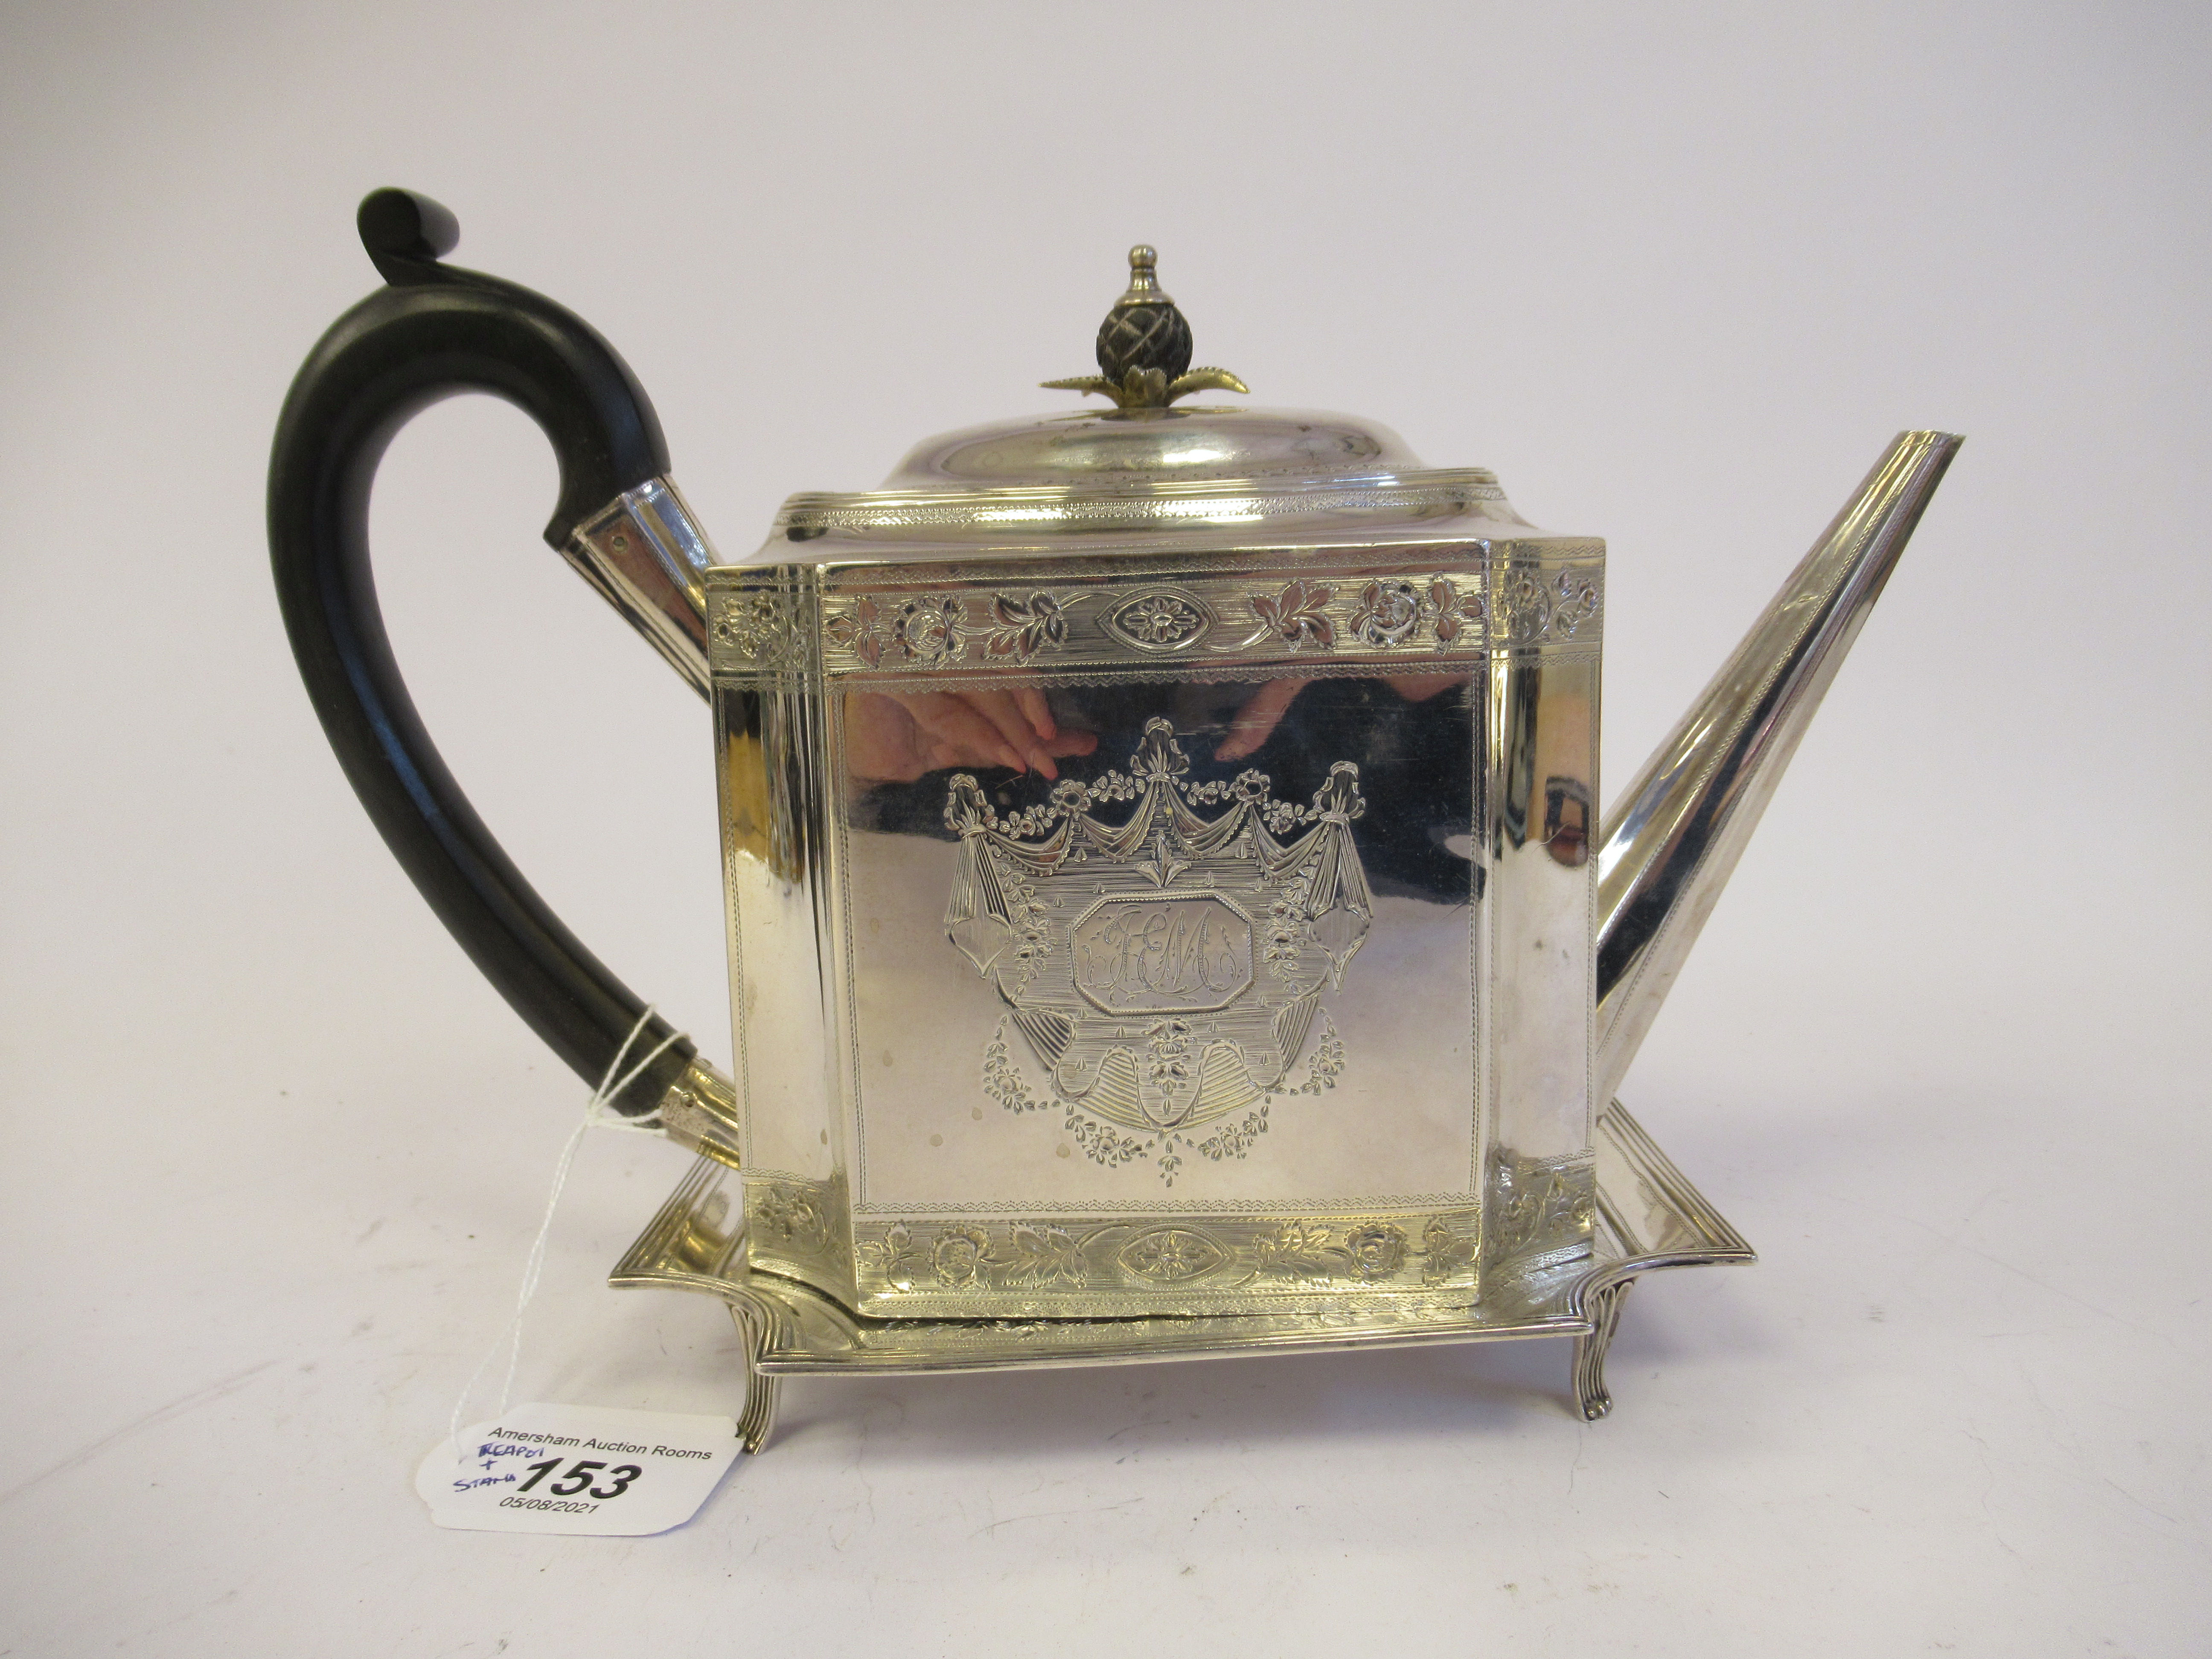 A George III silver teapot of straight sided, incurved box design, having an angled straight,